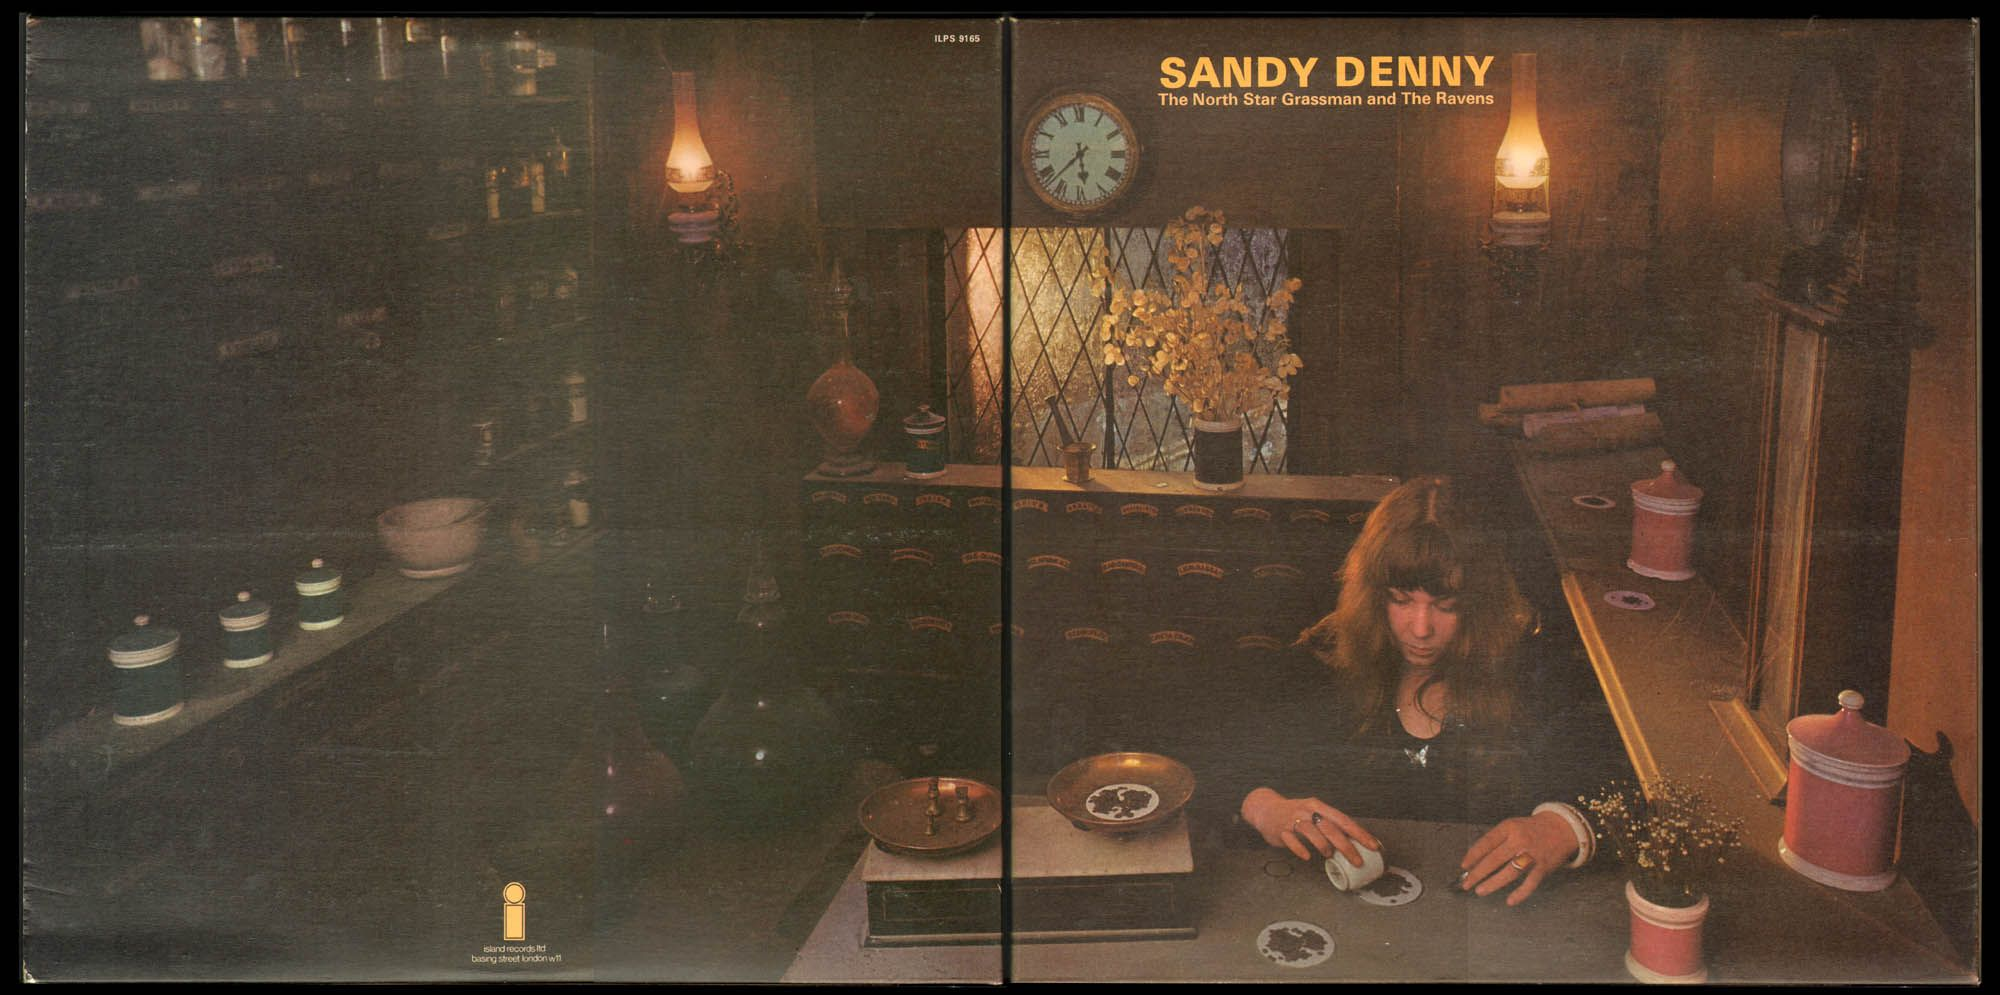 Sandy Denny The North Star Grassman And The Ravens 1971